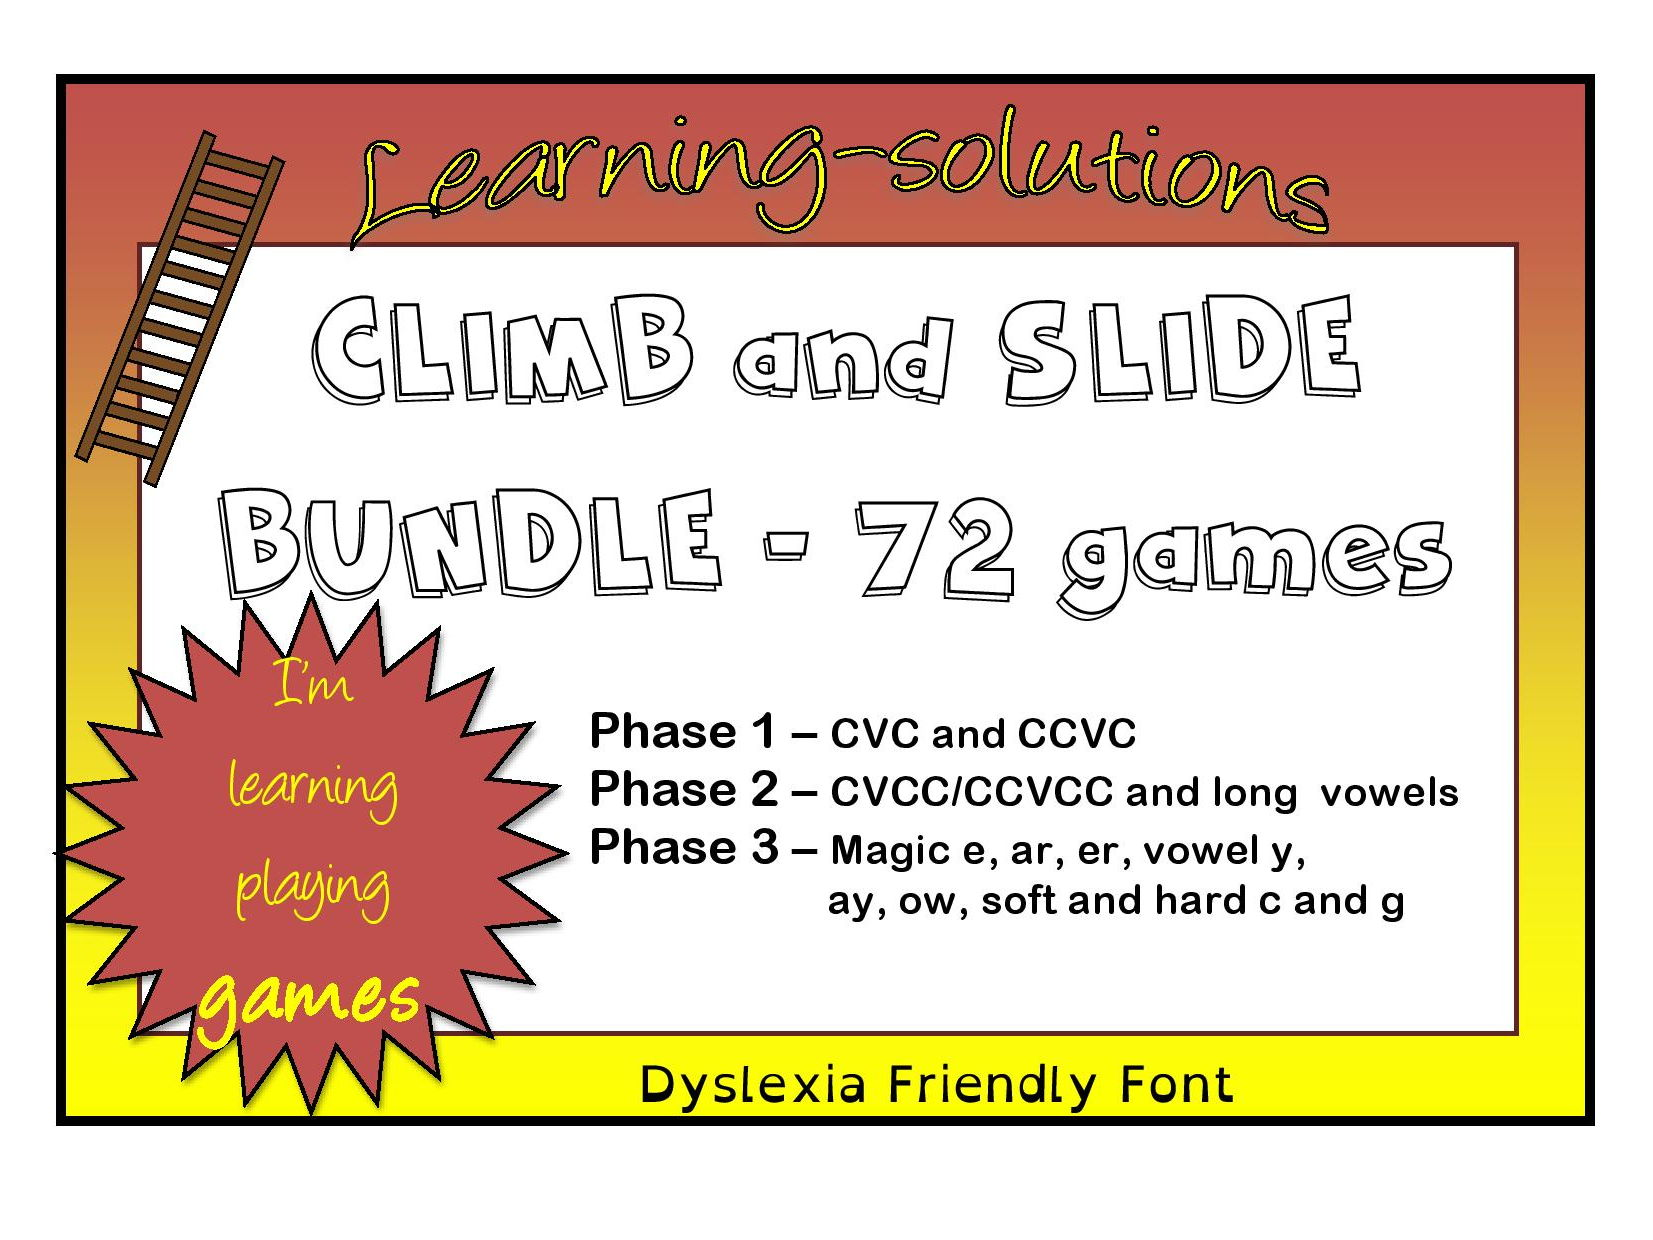 CLIMB AND SLIDE BOARD GAMES - Foundation Phonics - Phases 1 to 3 - 72 games